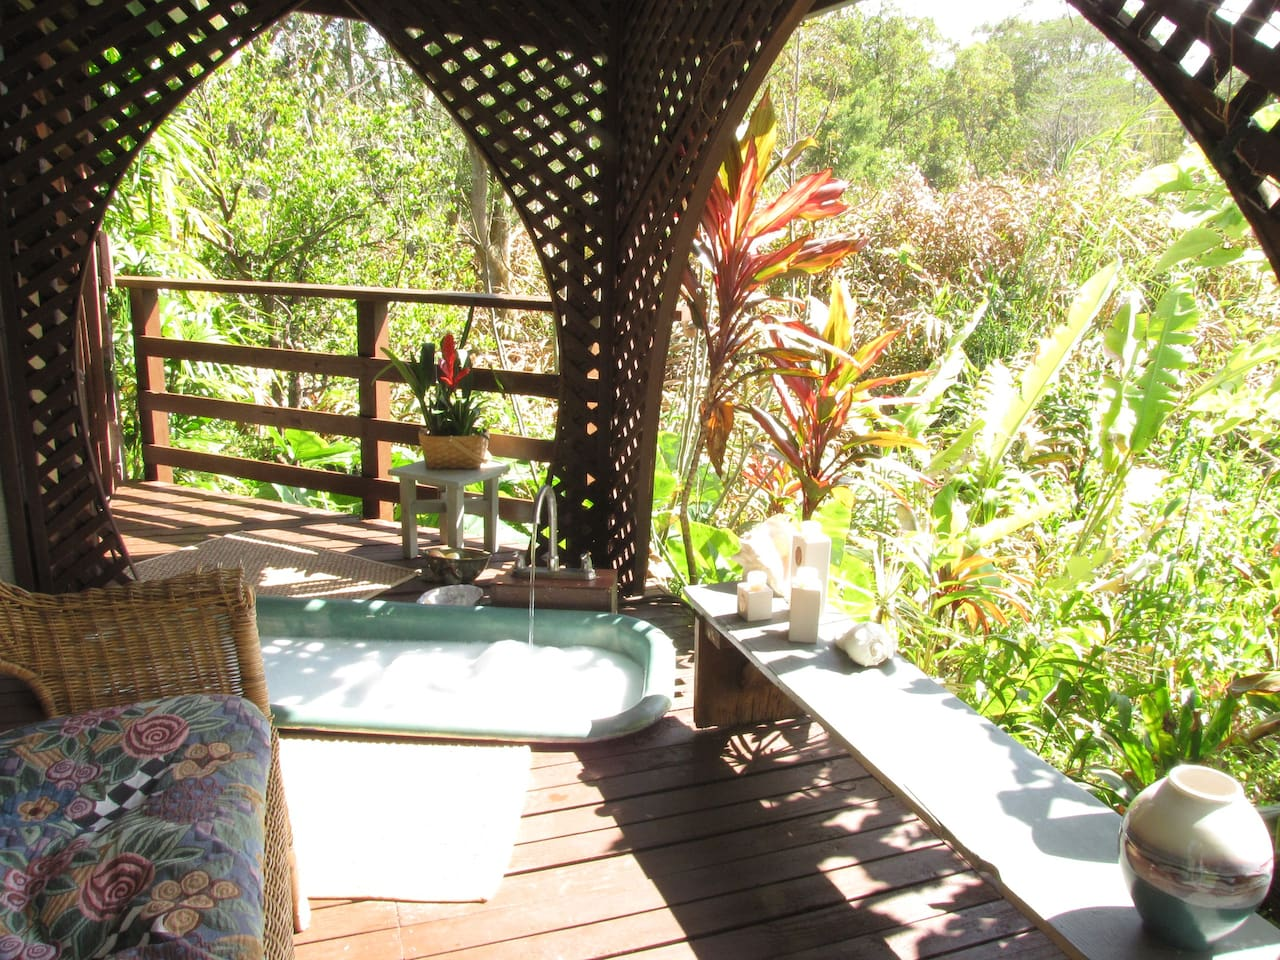 Secluded Nature Spa Bath House and Shower located next to the main house. Totally private, take a bath under the stars and moon light.